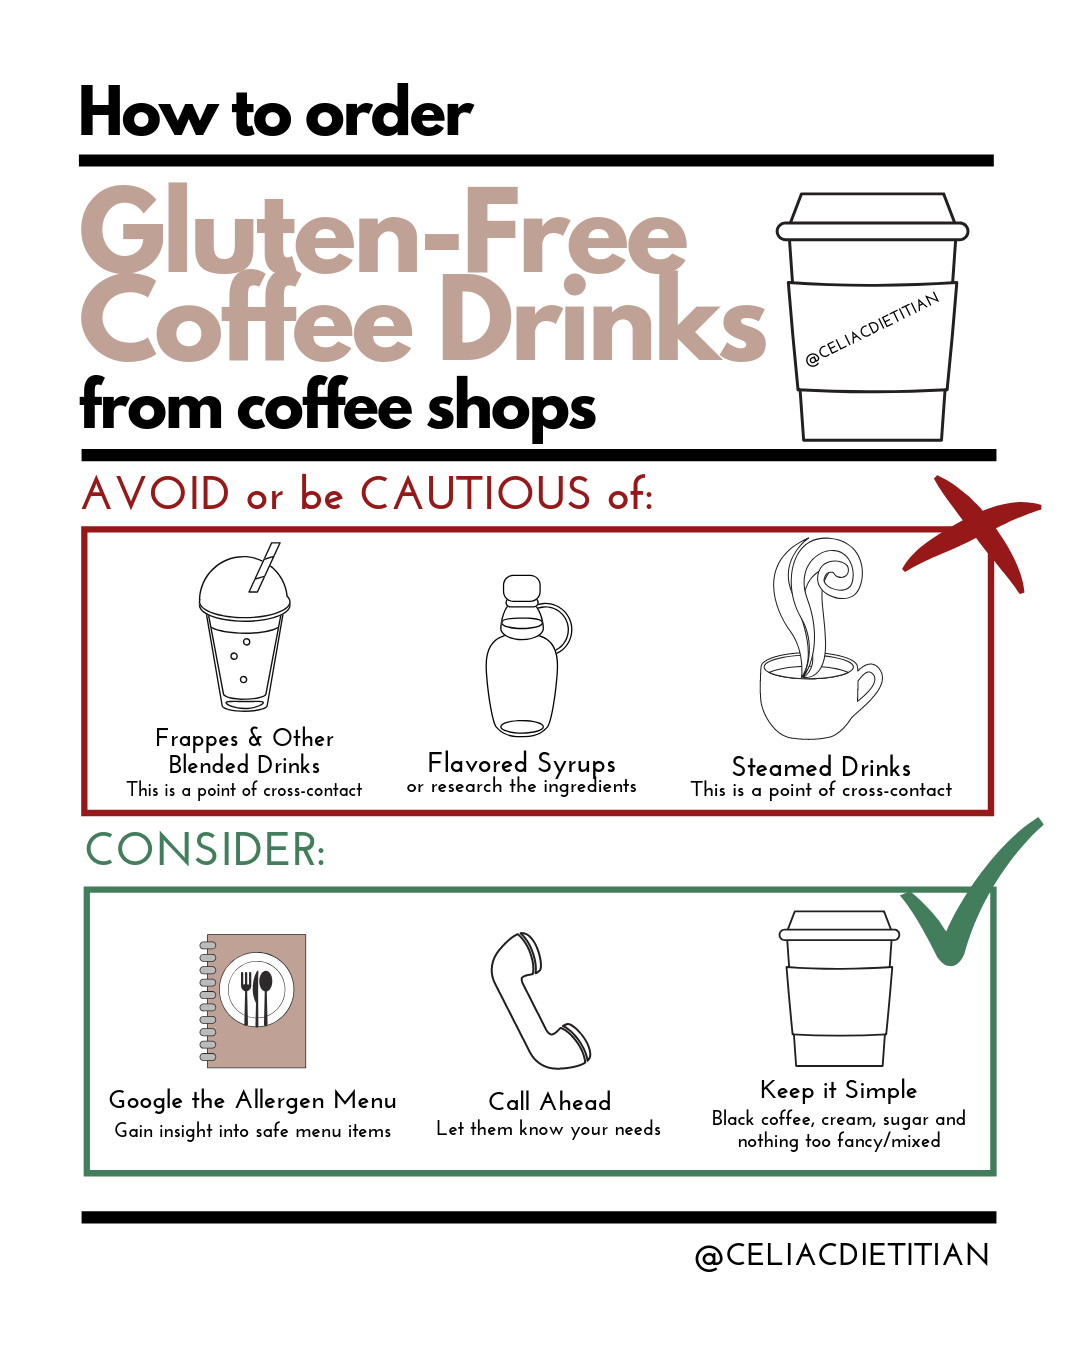 How to Order Gluten-Free Coffee Drinks